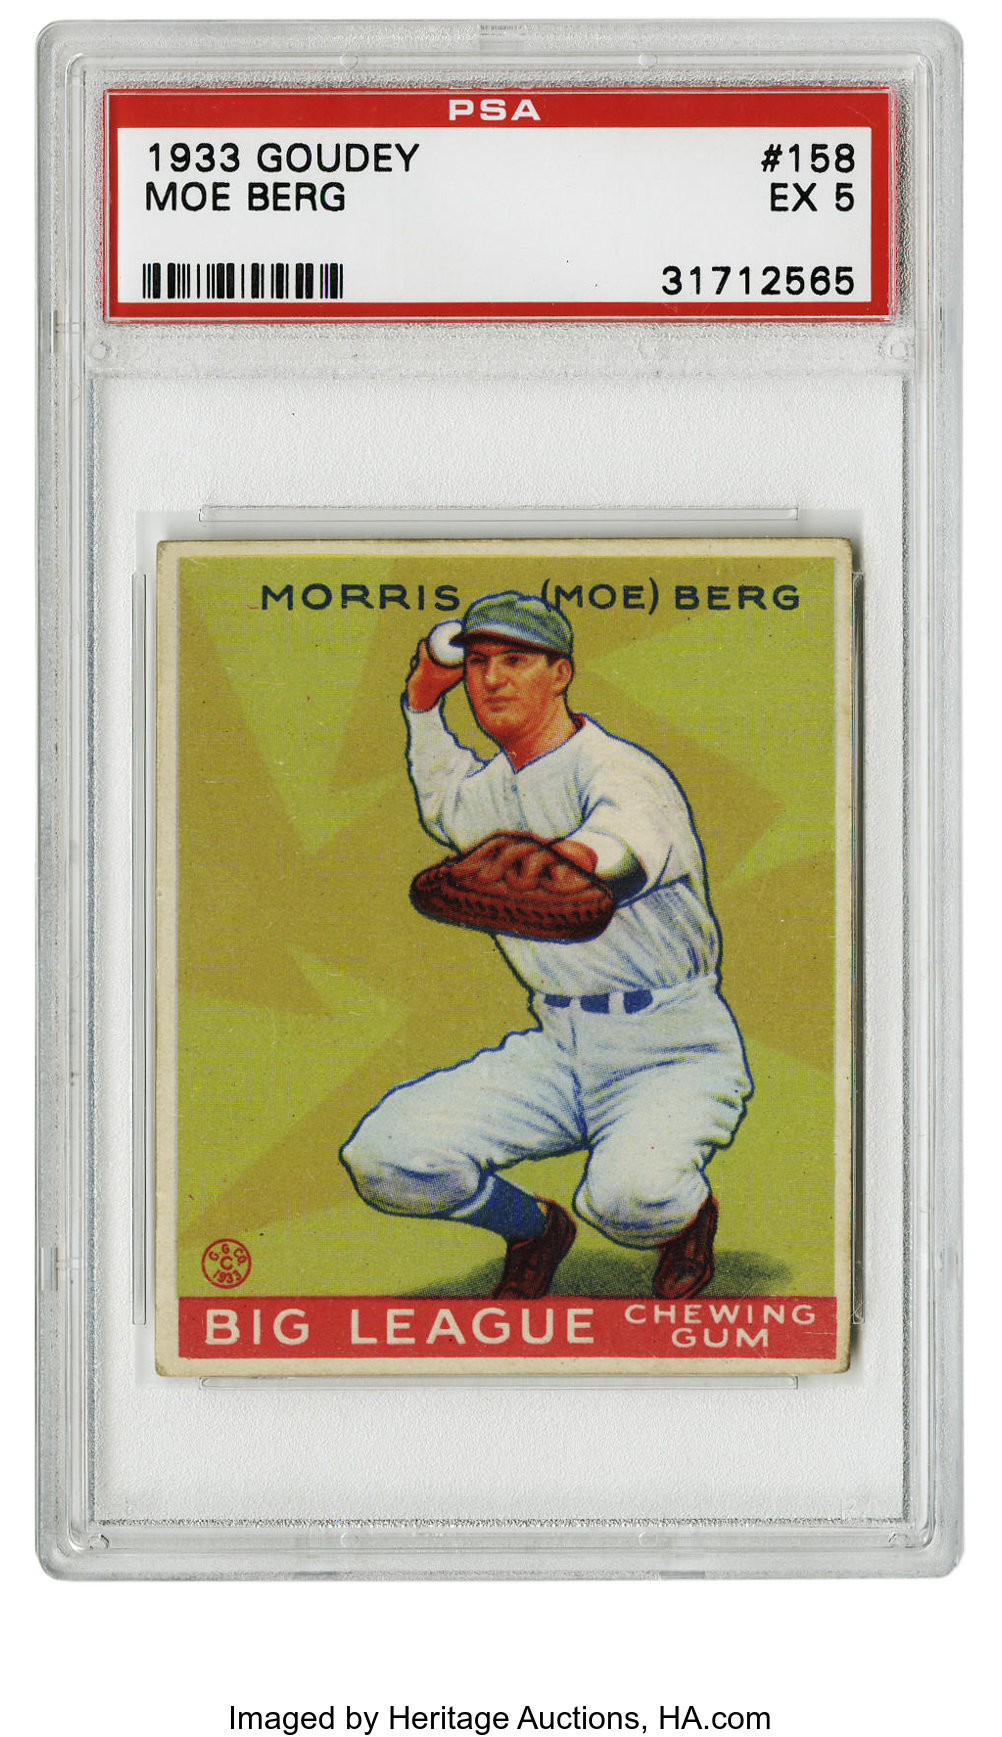 Auction Prices Realized Baseball Cards 1933 Goudey Moe Berg